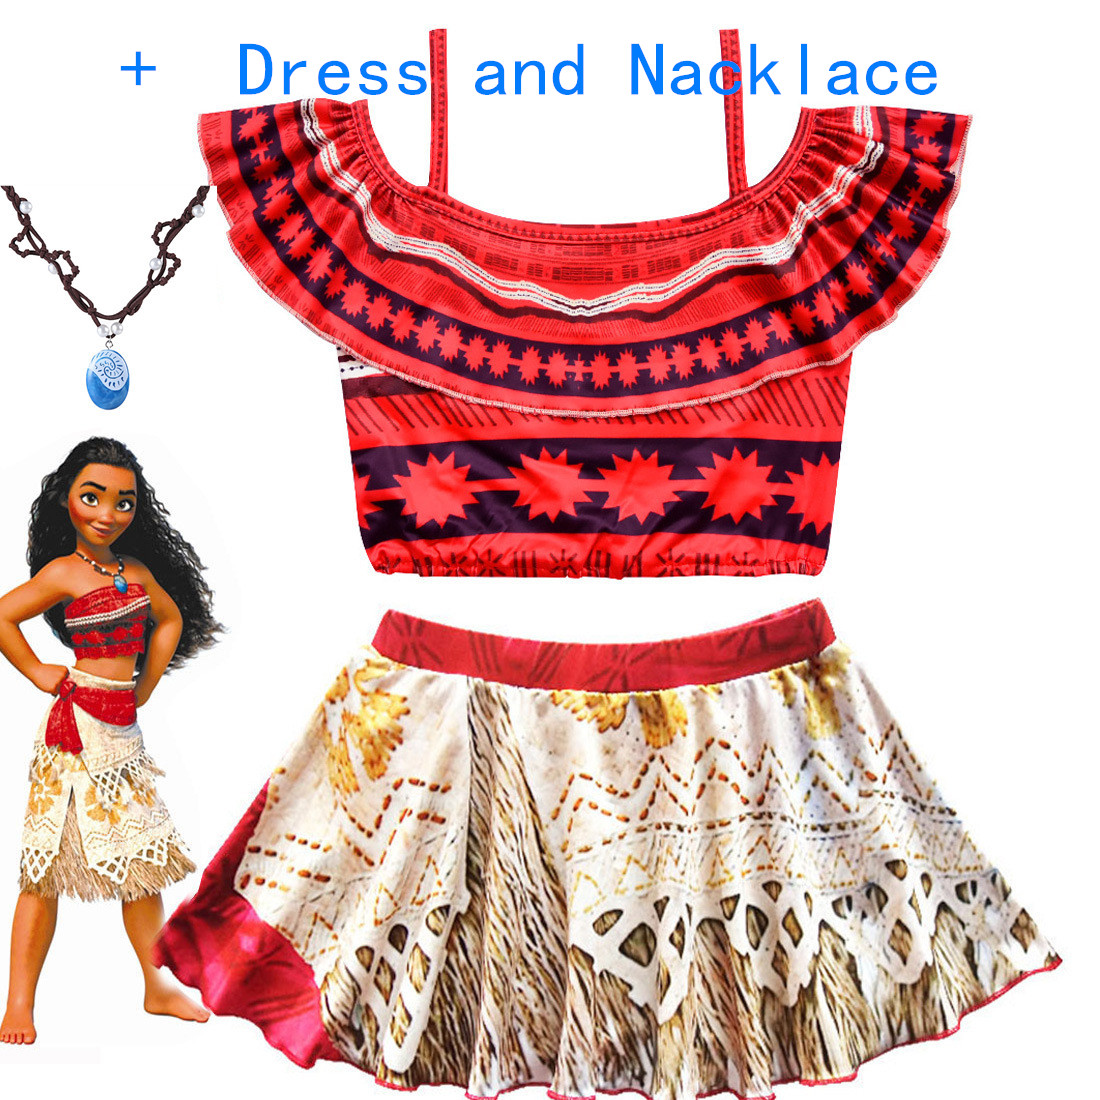 95446491f1943 Worldwide delivery moana dresses for girls in NaBaRa Online